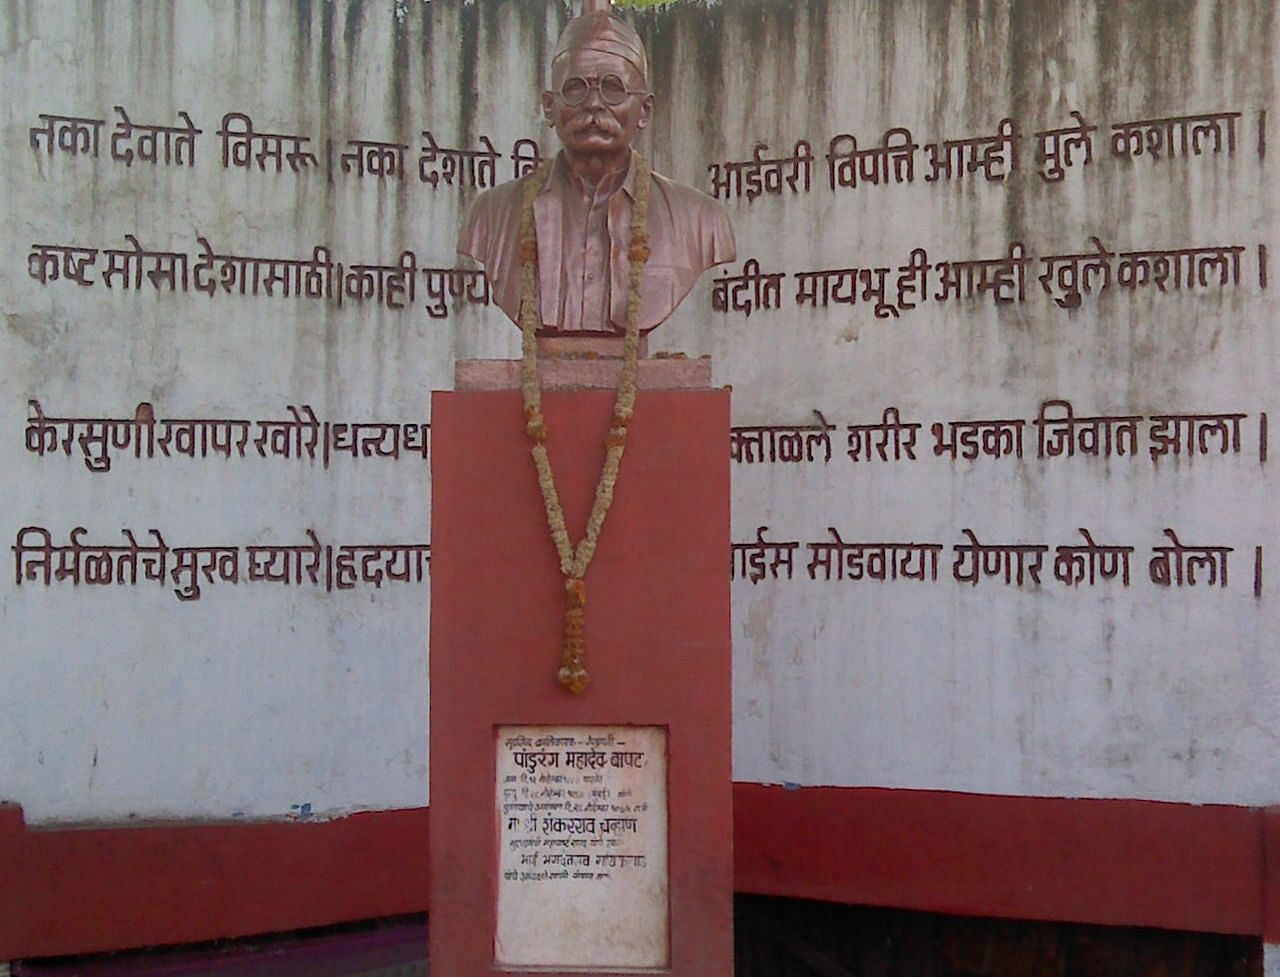 The bust of Senapati Bapat in Nagpur. (Source: Wikimedia Commons)